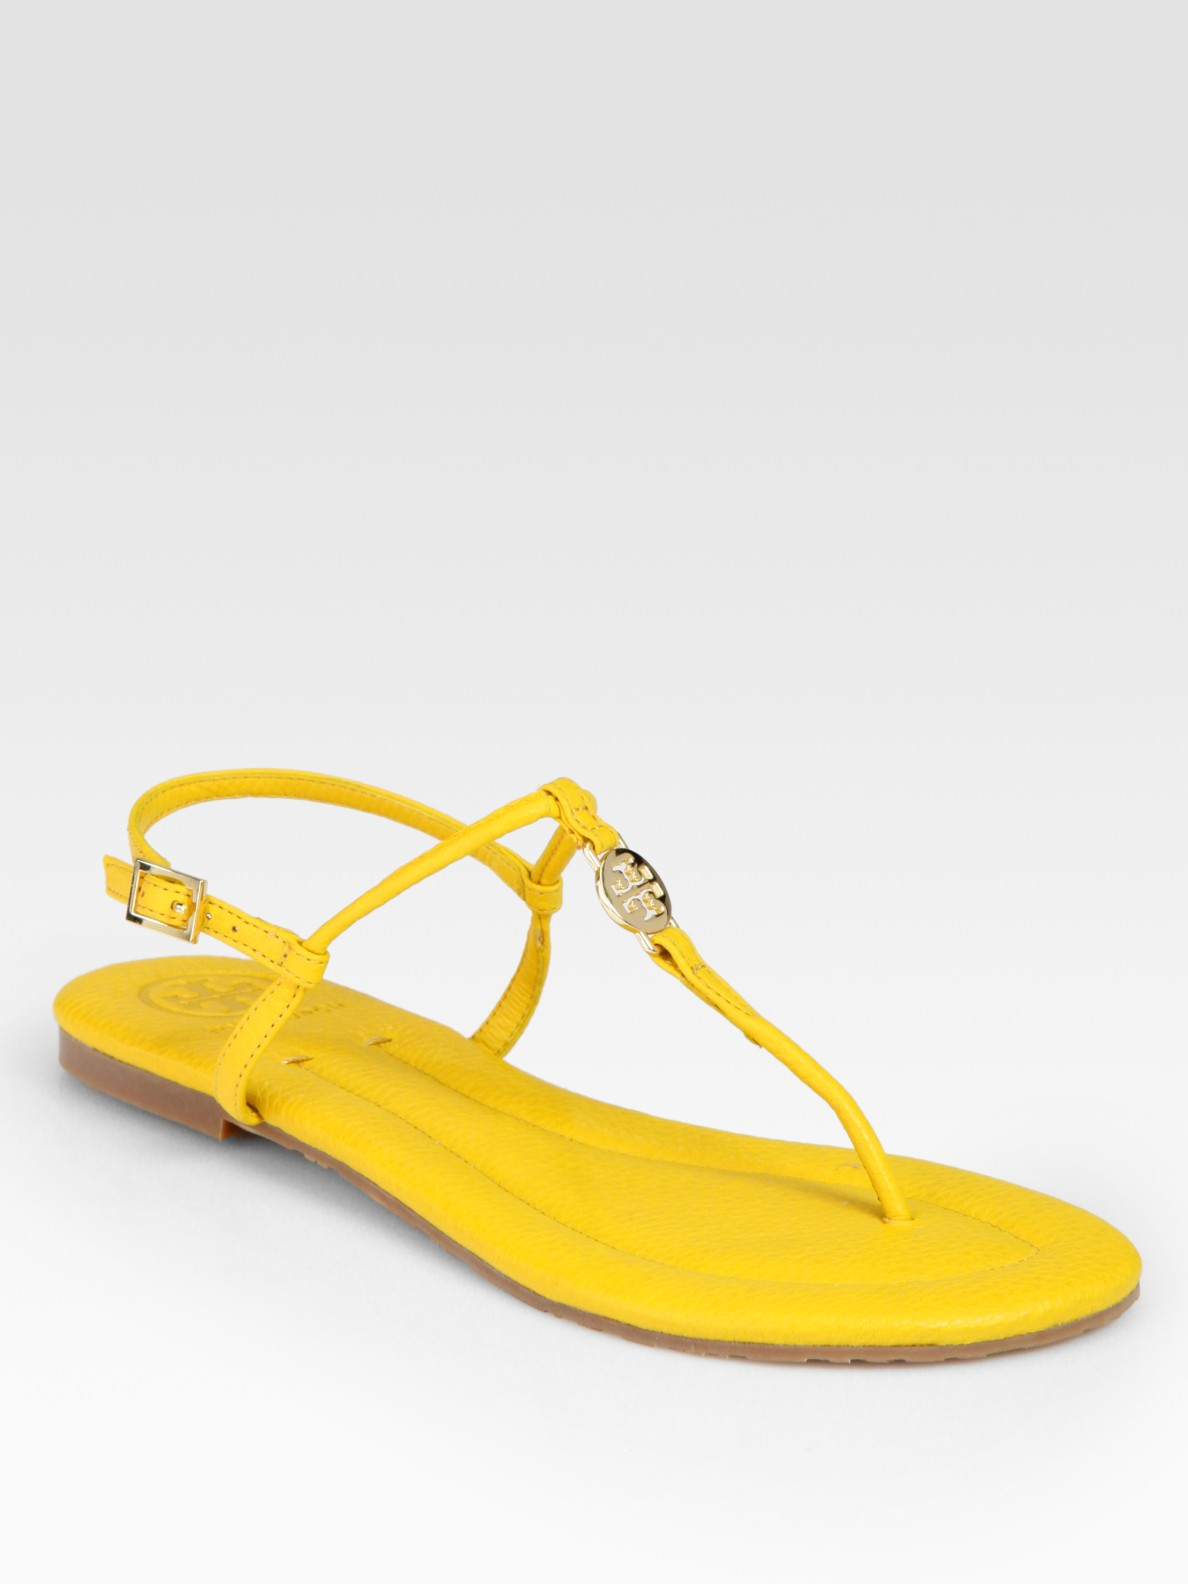 Lyst Tory Burch Emmy Leather Thong Logo Sandals In Yellow